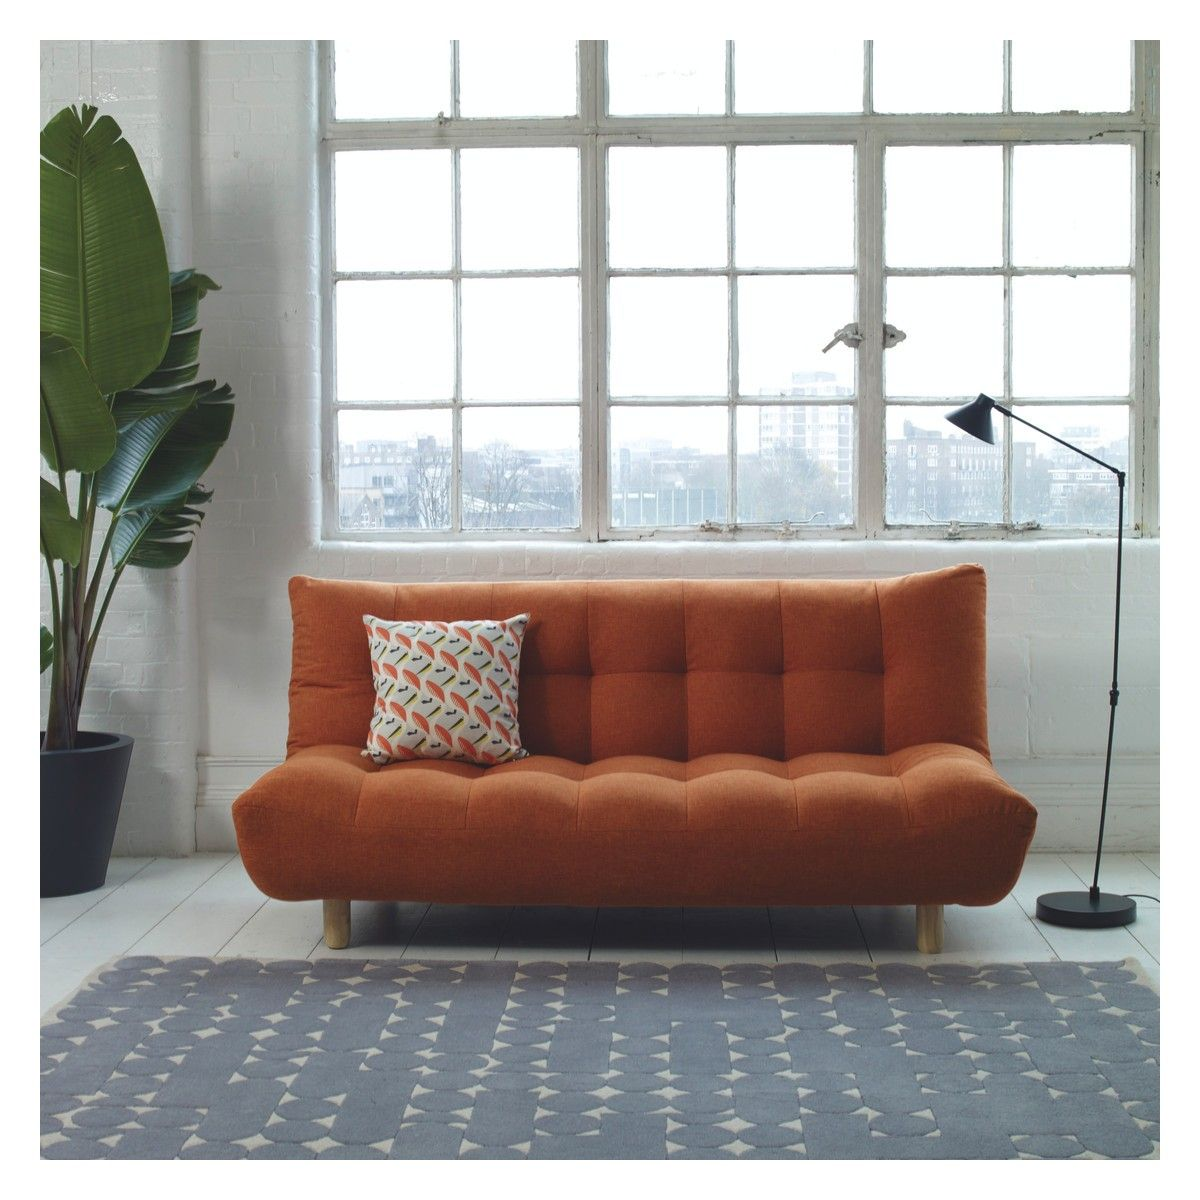 Phenomenal Kota Orange Fabric 2 Seater Sofa Bed Buy Now At Habitat Uk Unemploymentrelief Wooden Chair Designs For Living Room Unemploymentrelieforg